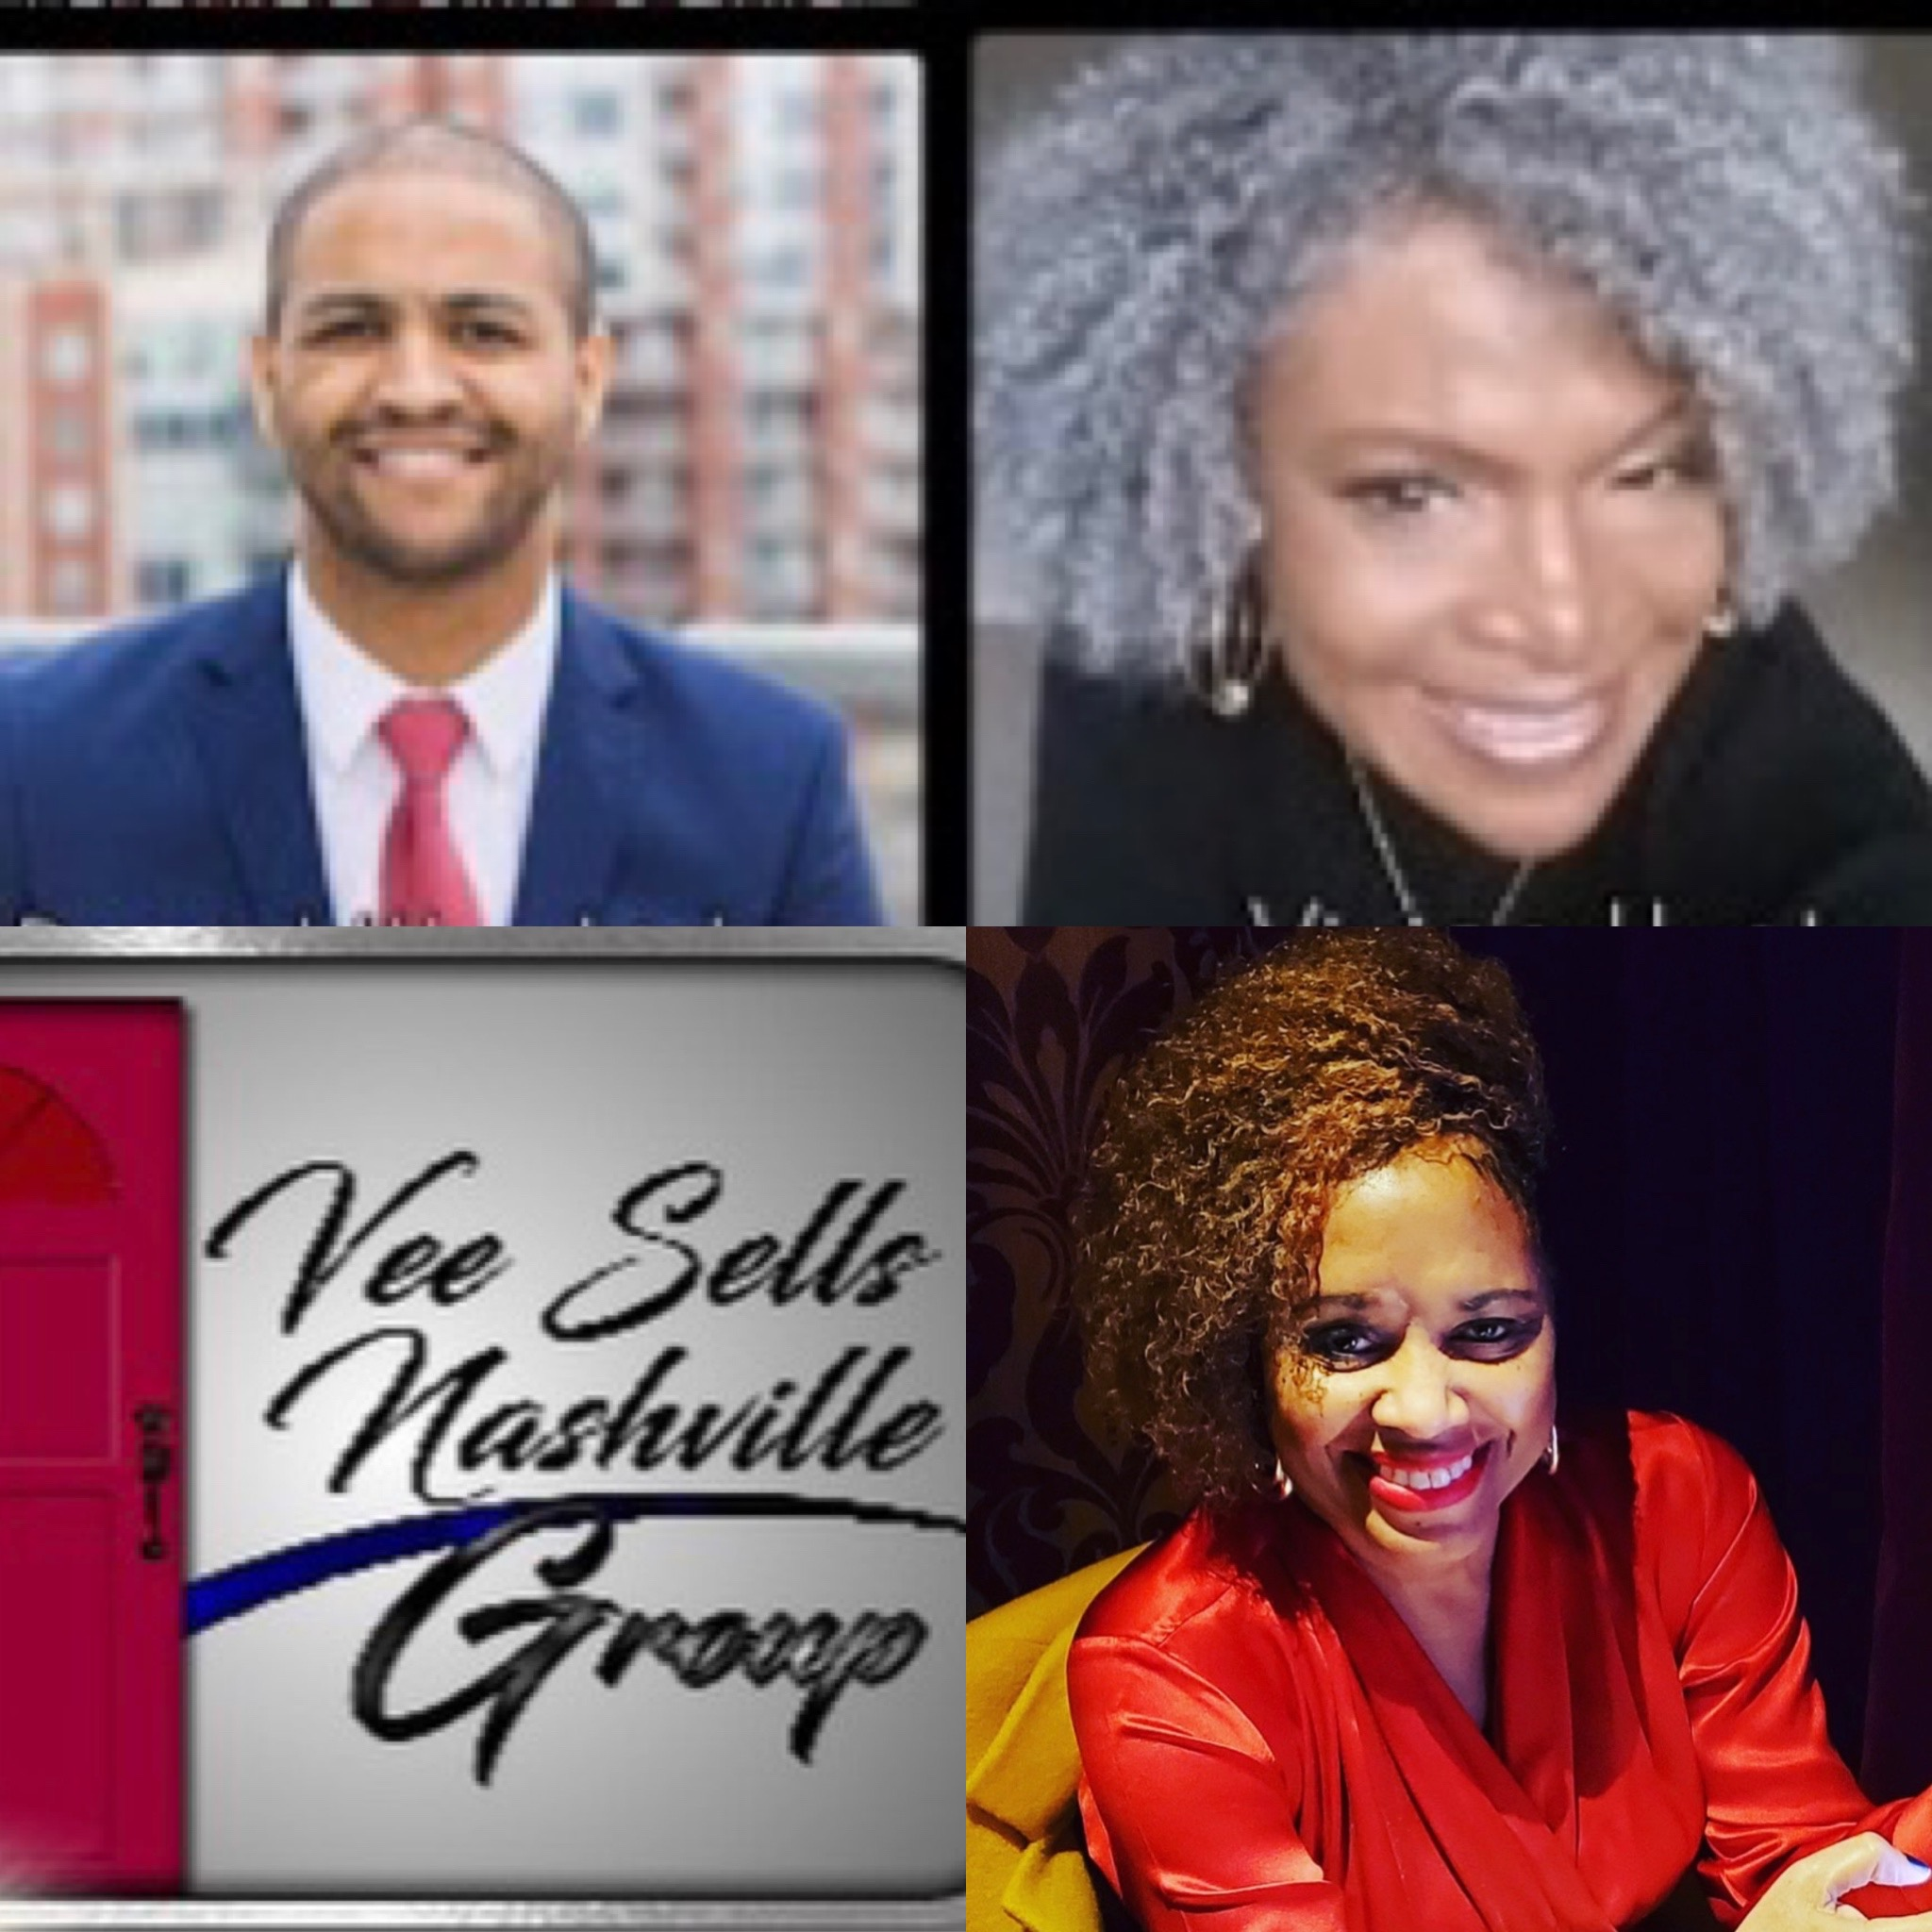 Vee Sells Nashville Group